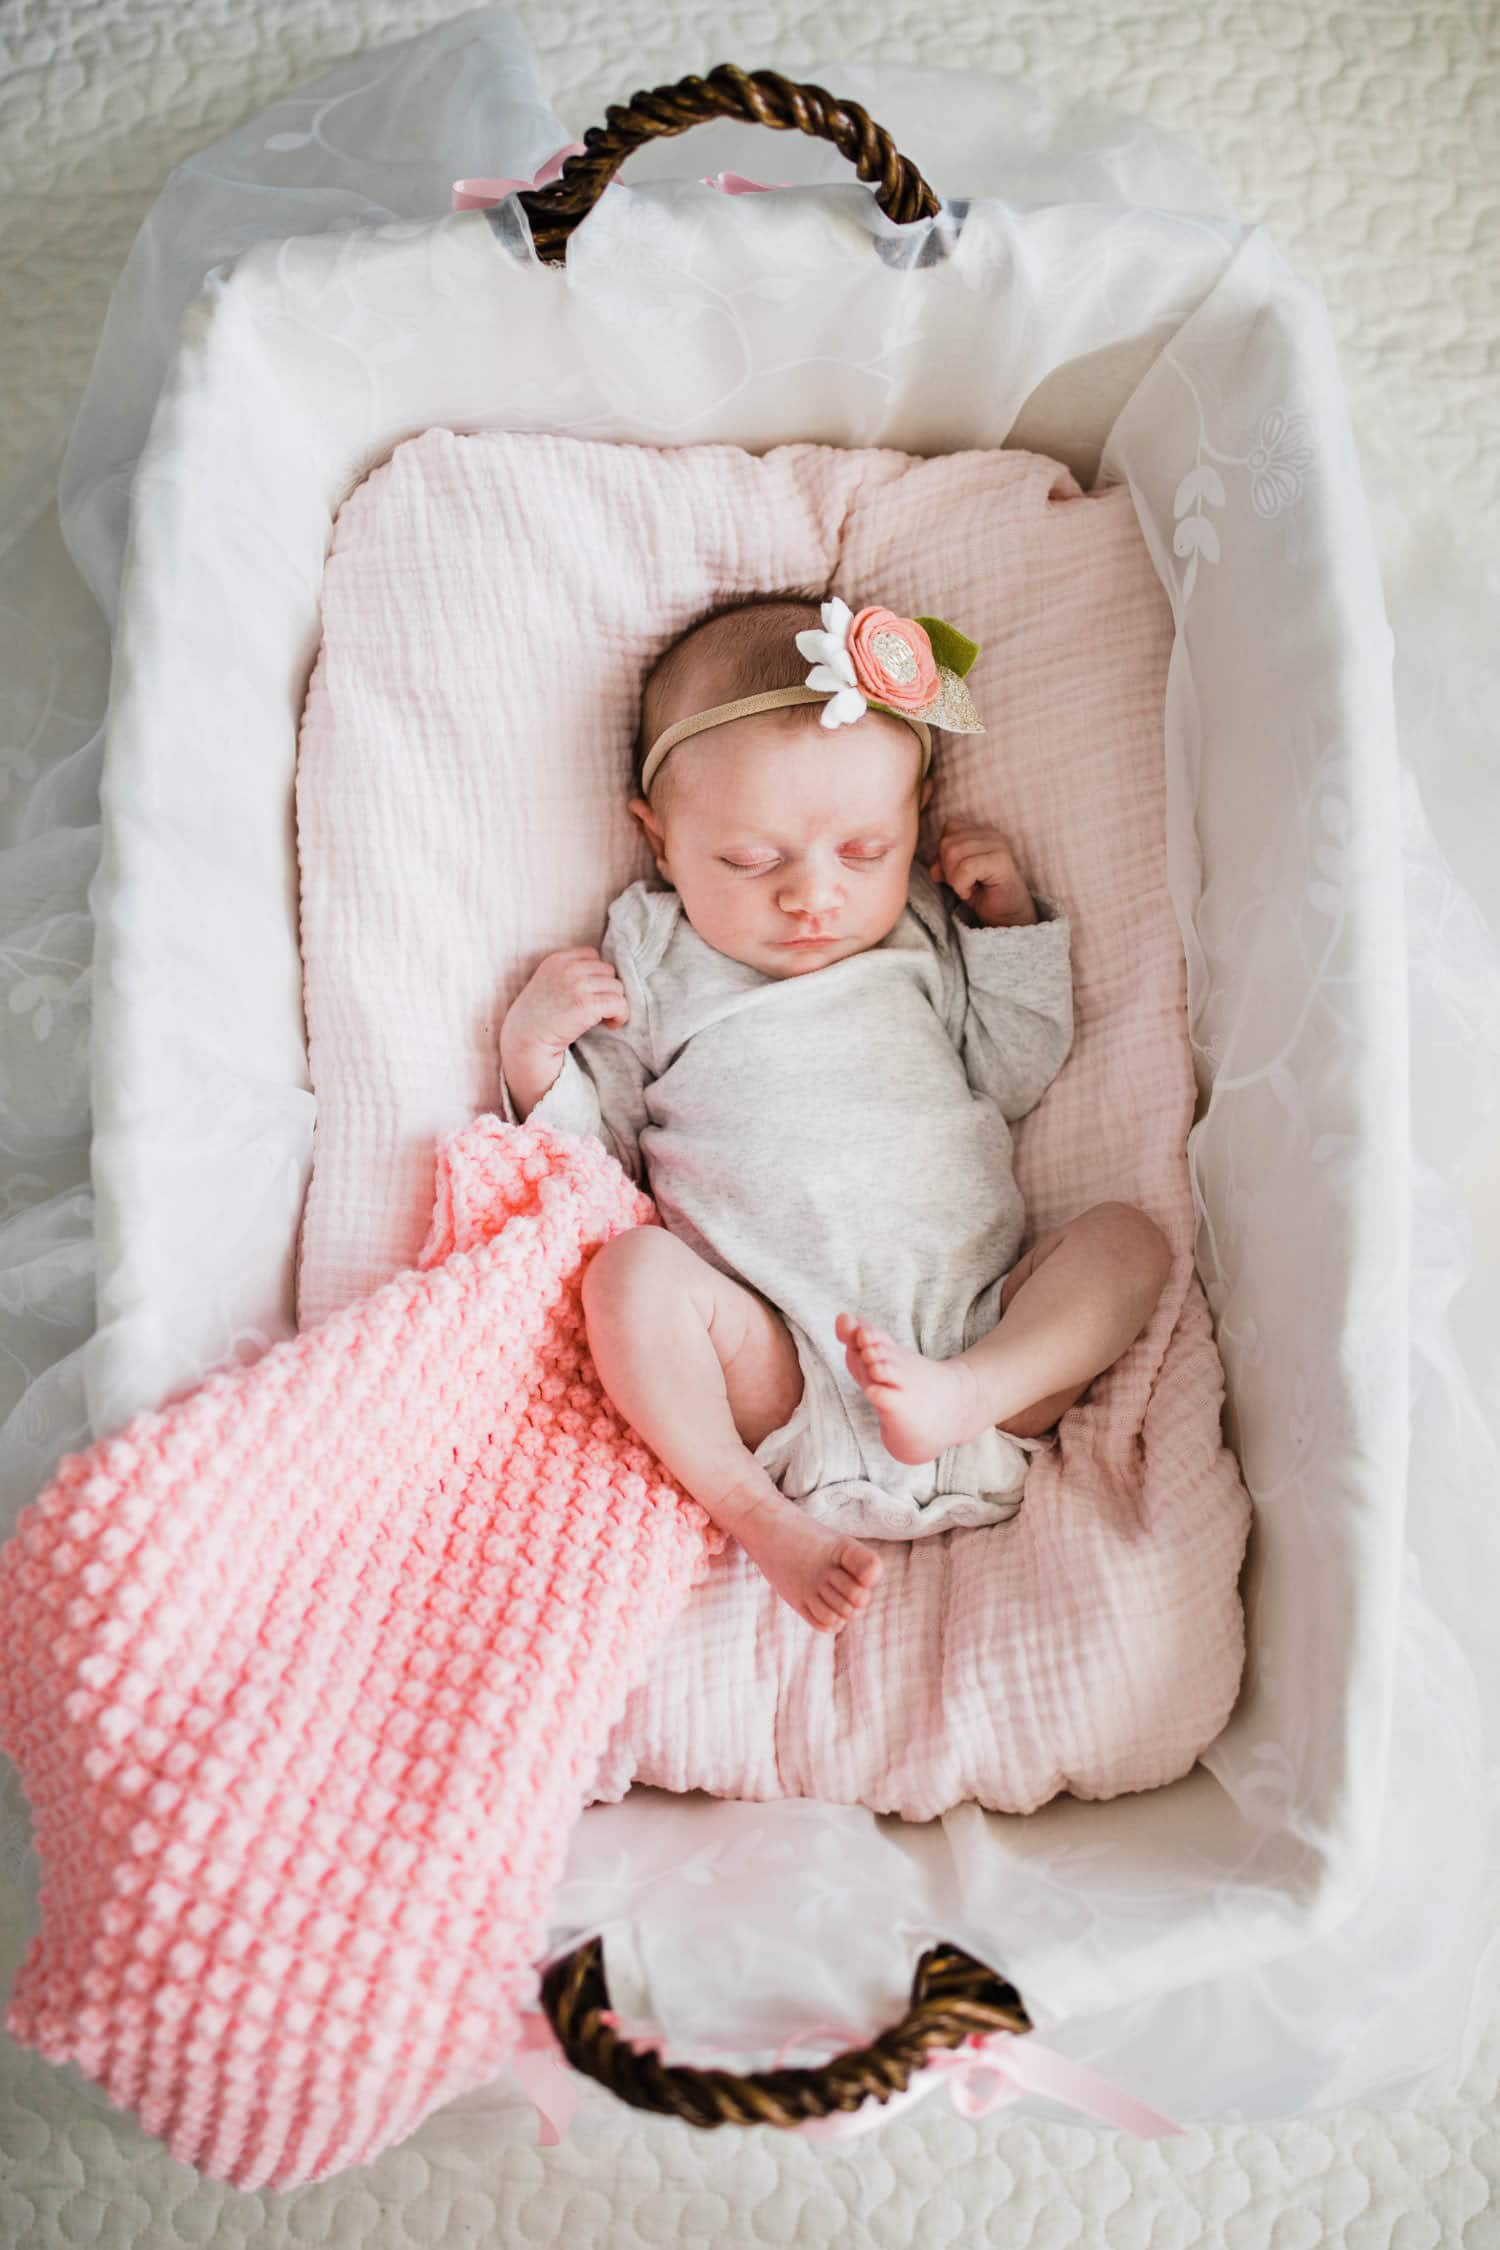 newborn baby in family heirloom basket